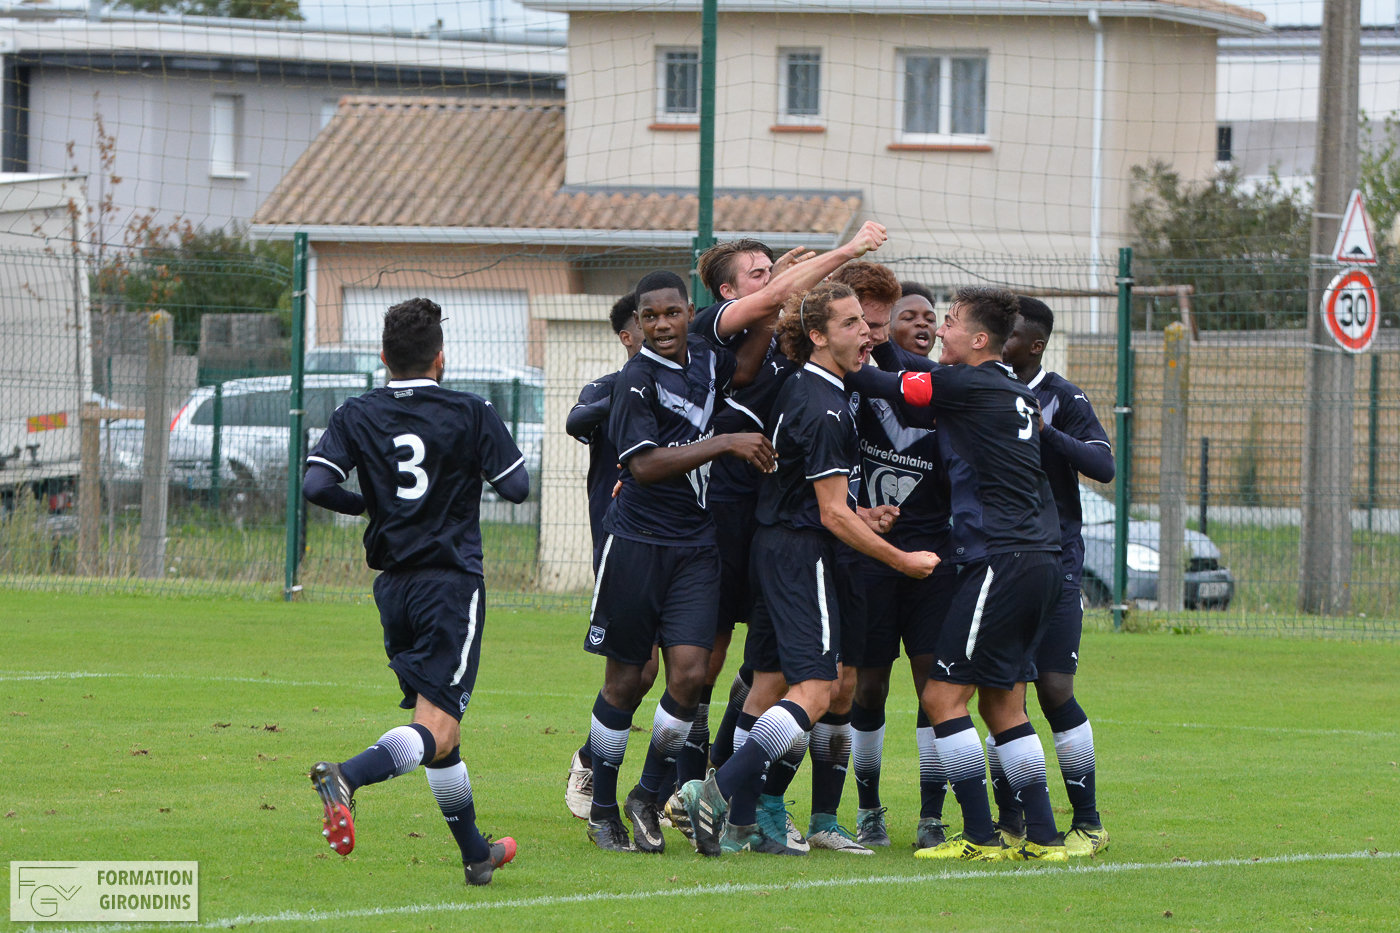 Cfa Girondins : Bordeaux s'impose à Libourne (1-4) - Formation Girondins